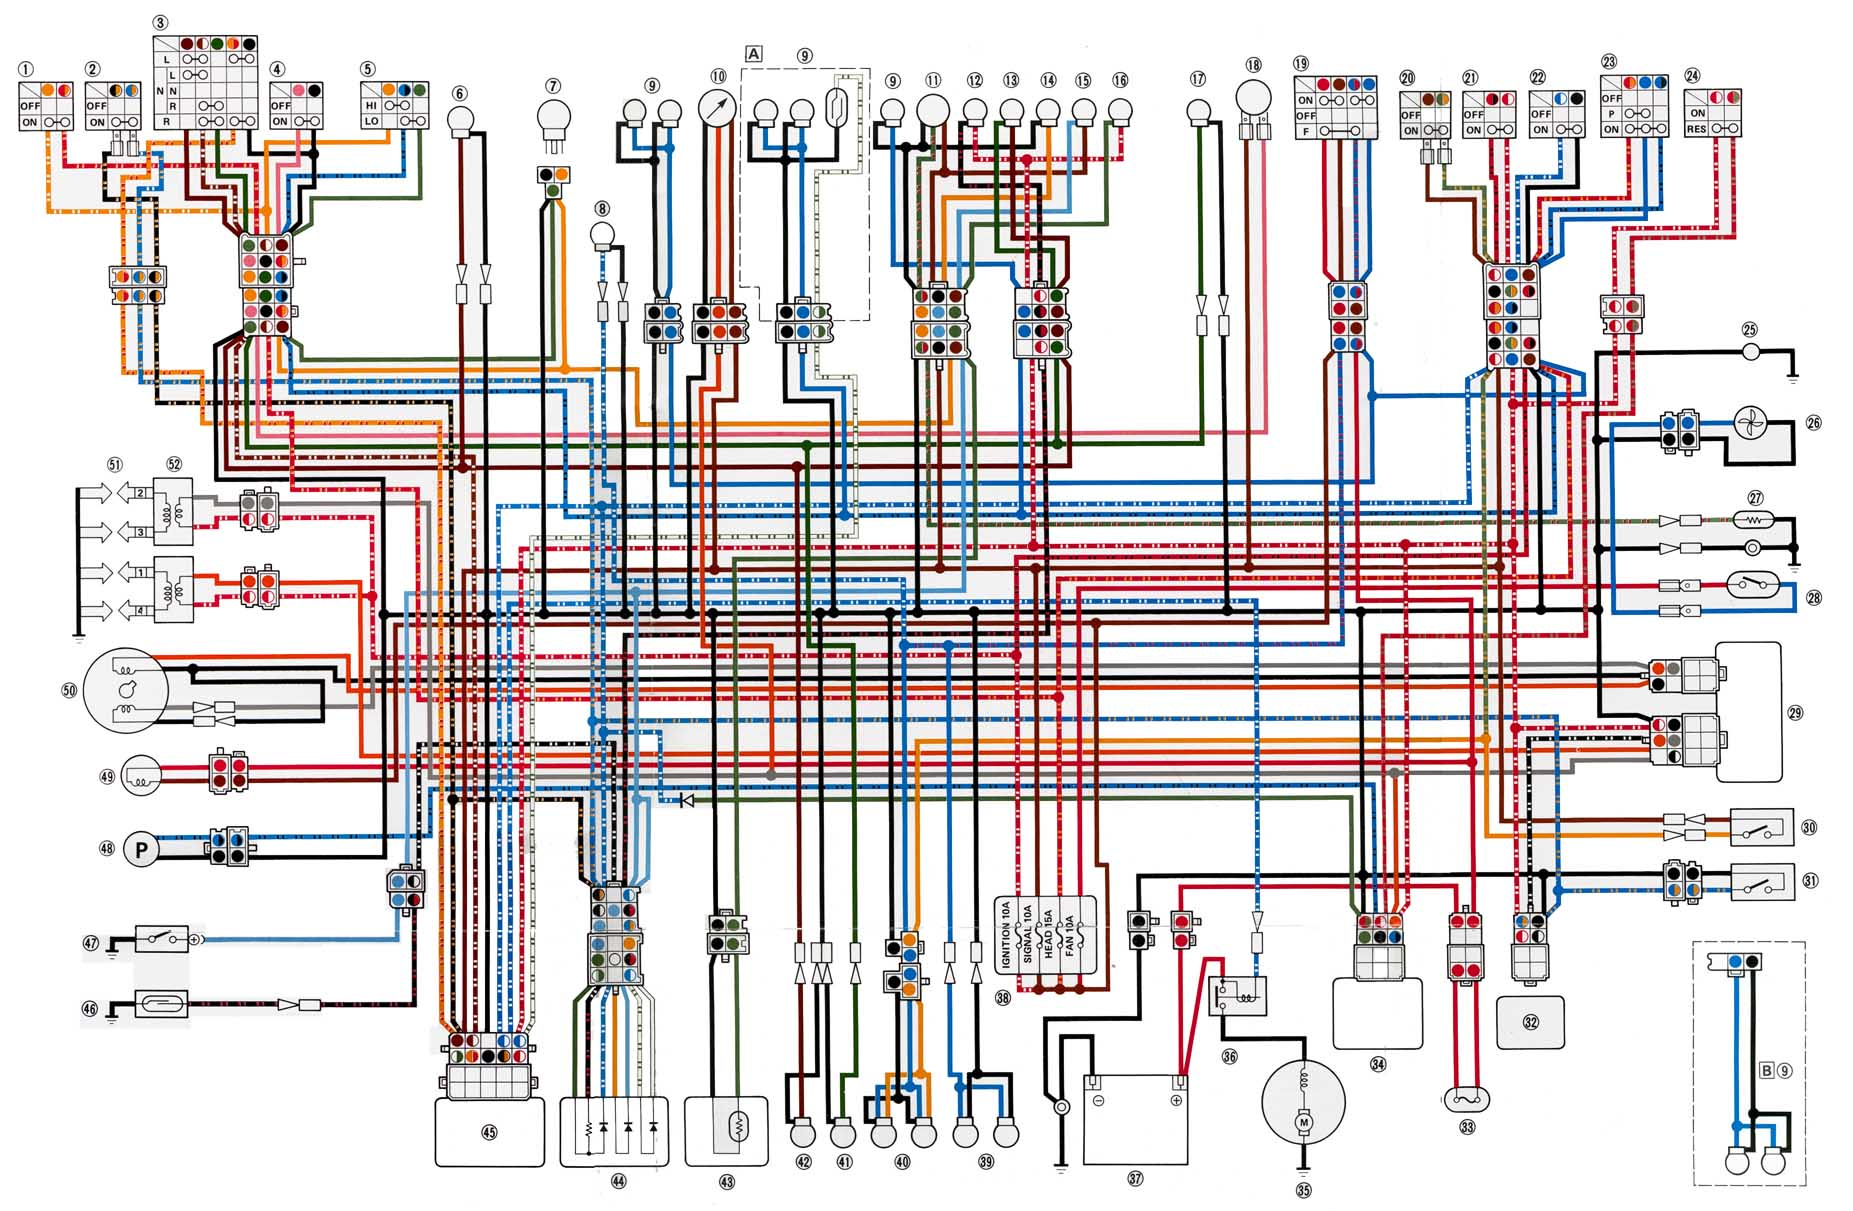 Wiring Diagram For Yamaha Fzr 600